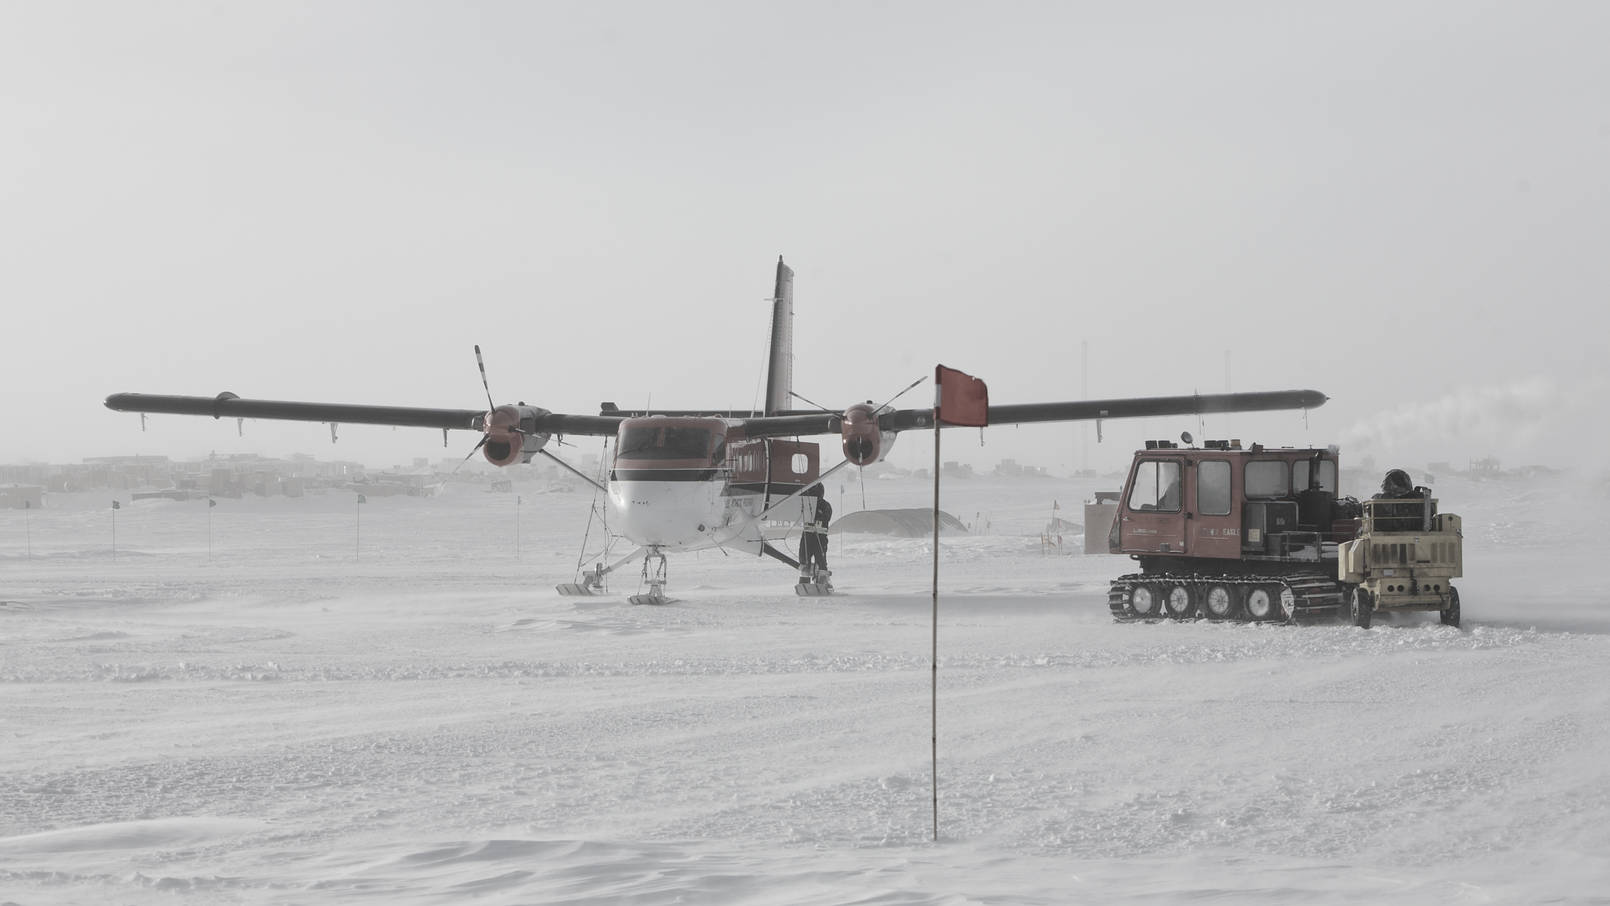 Arrival of the first Twin Otter